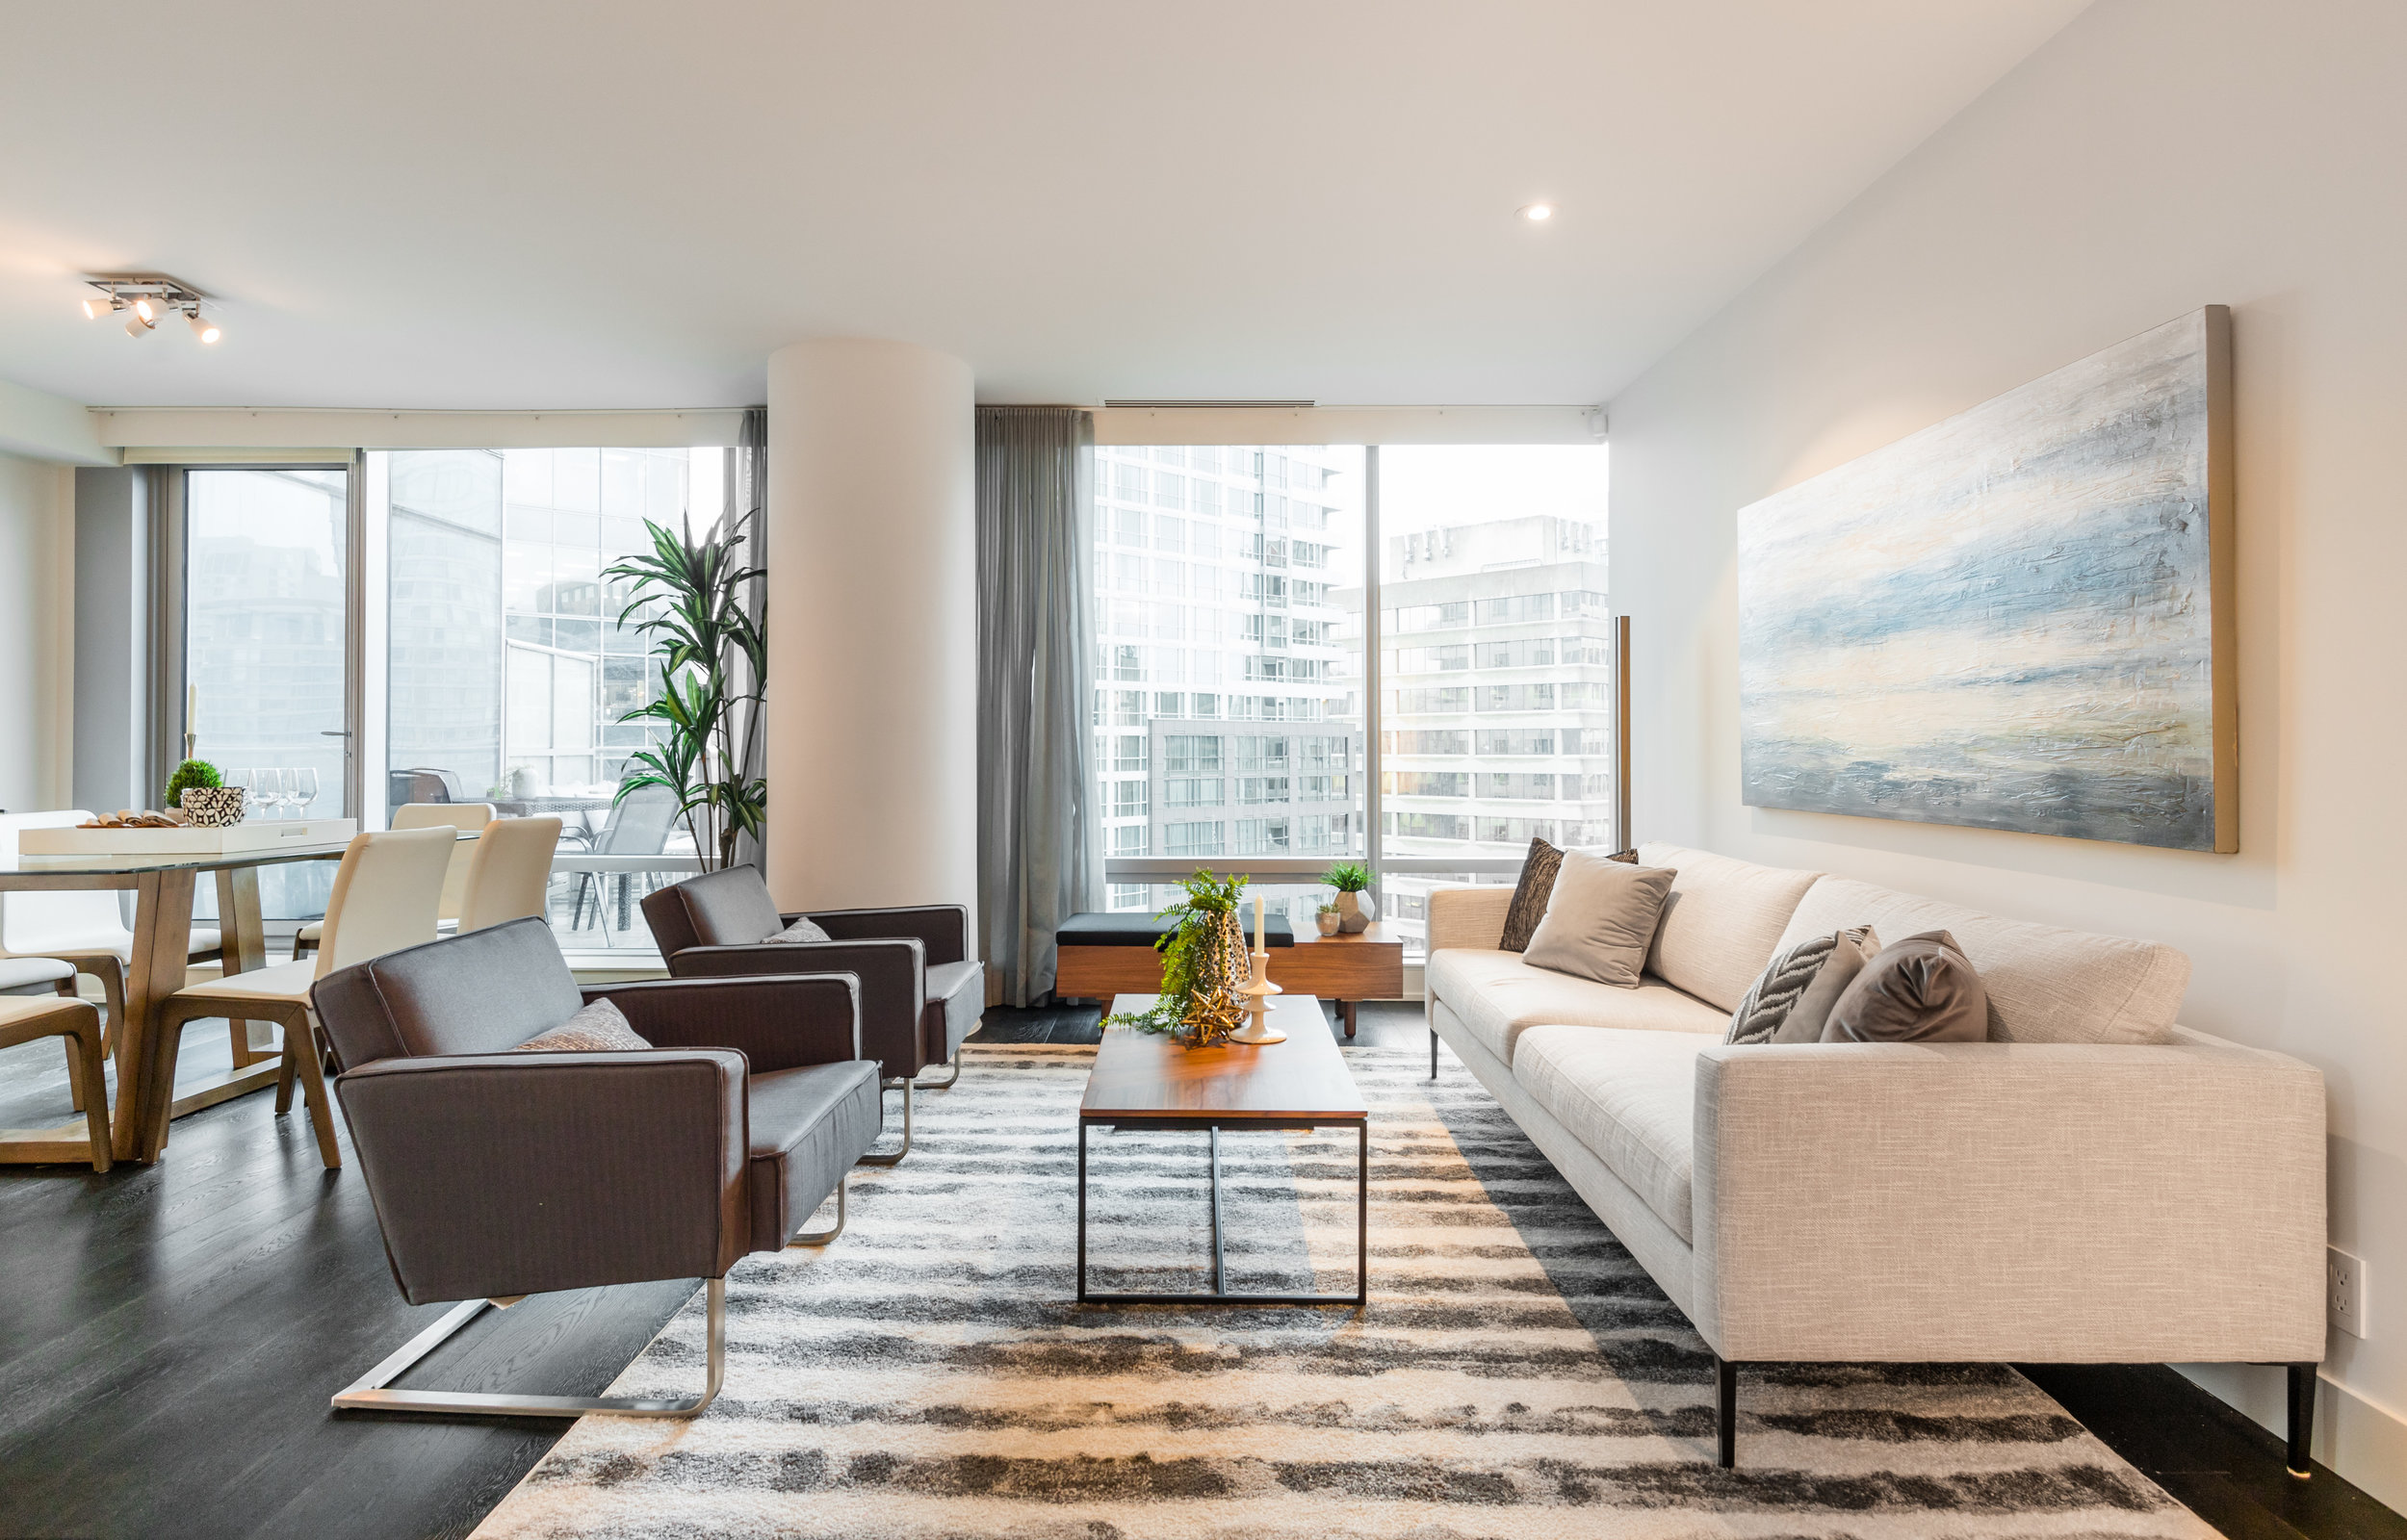 Living Shangri-la - #1701-1111 Alberni Street(SOLD)$1,899,000 | 2 Bed | 2 Bath